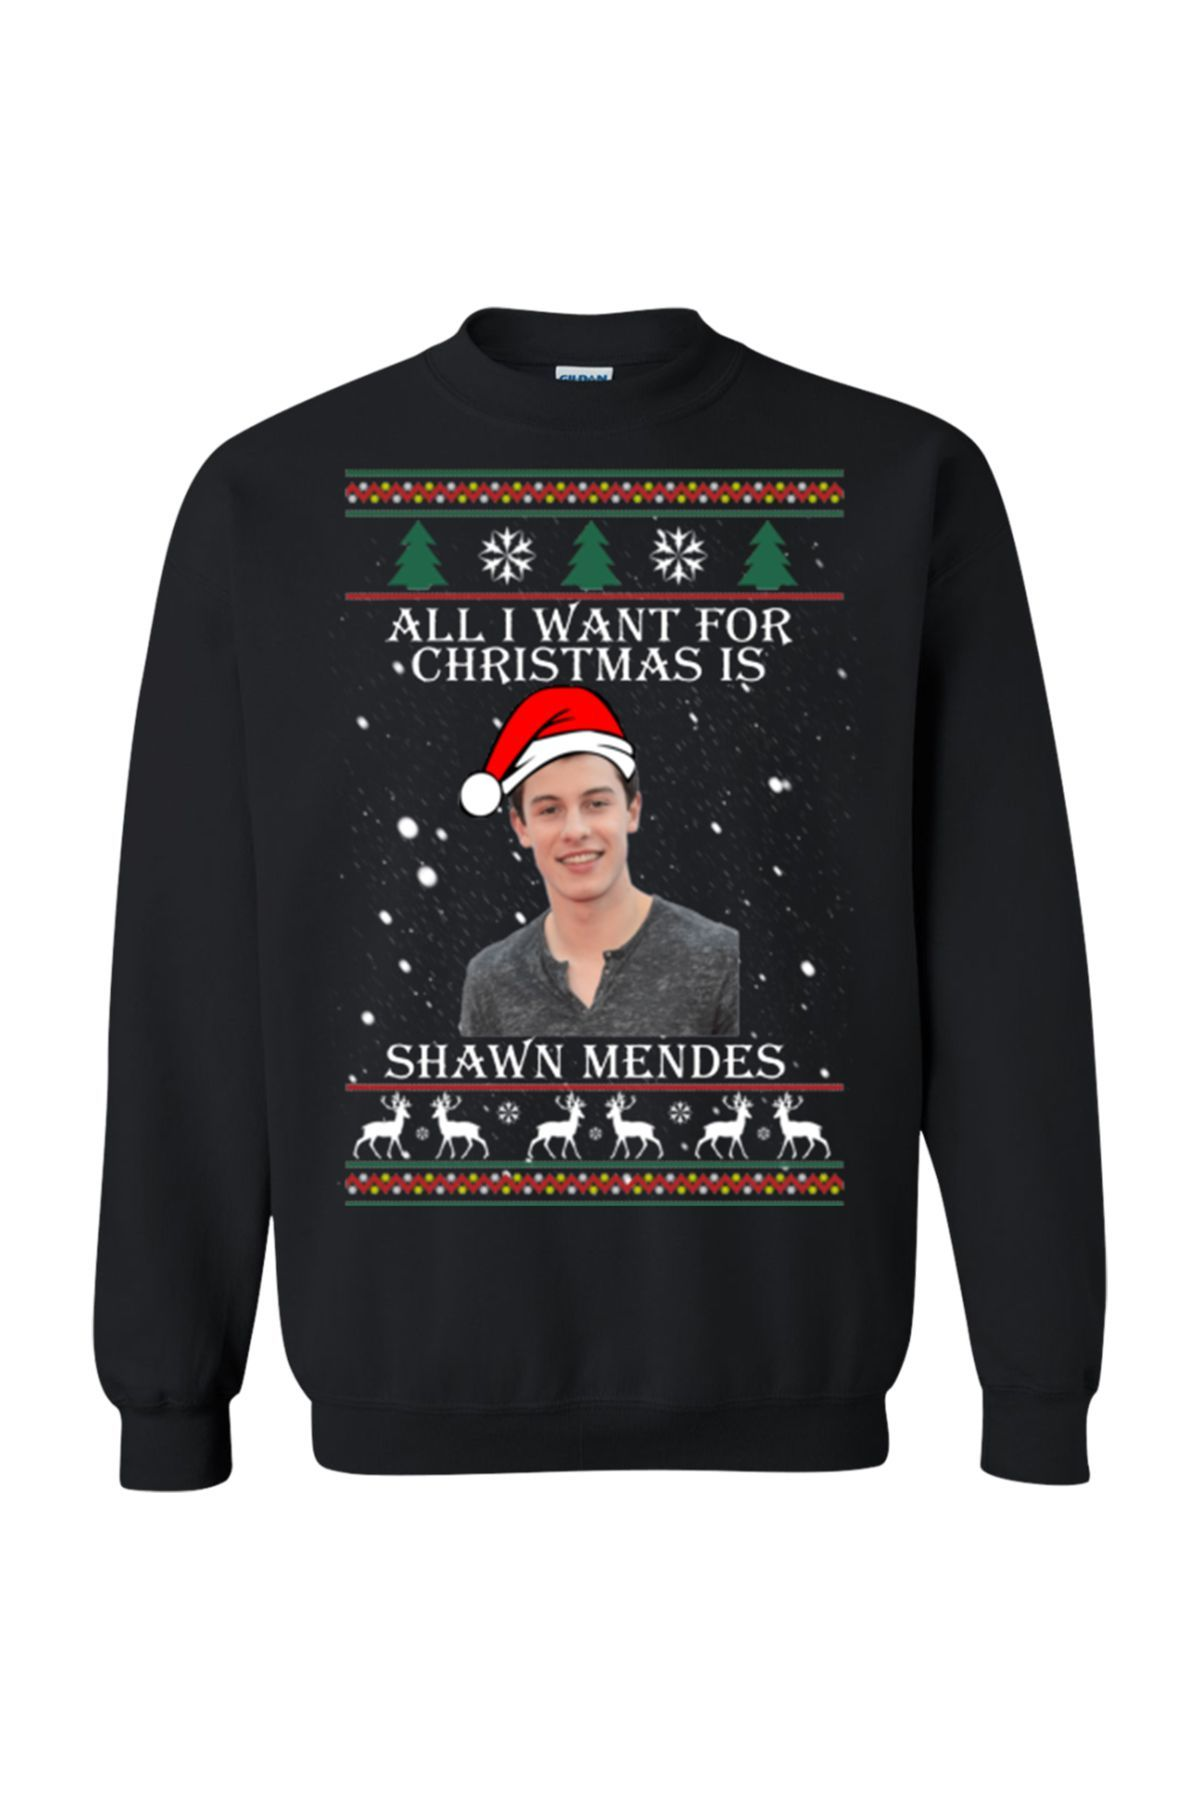 Shawn Mendes Merchandise - 16 Best Gifts for Shawn Mendes Fans 8c89f343aec